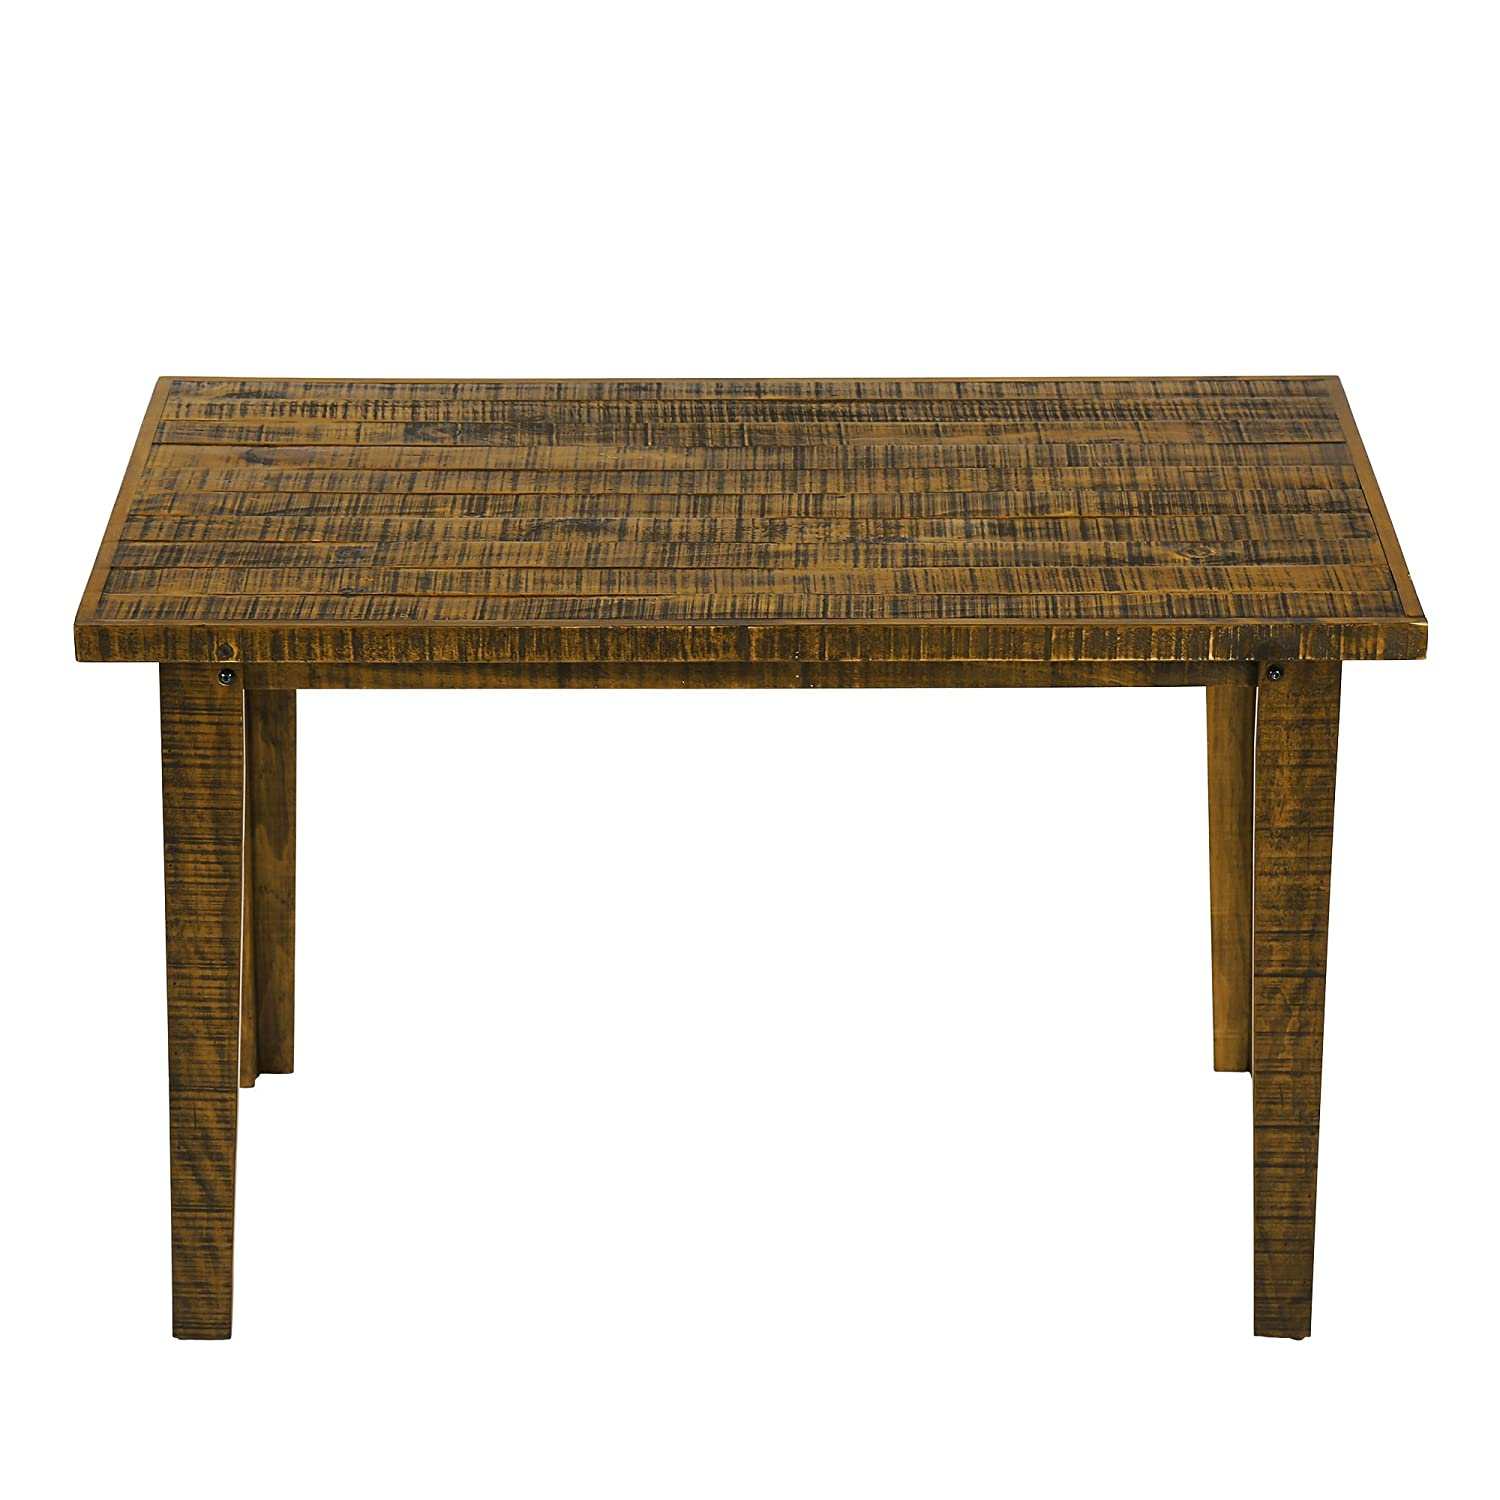 Ecos solid wood narrow dining table for small spaces